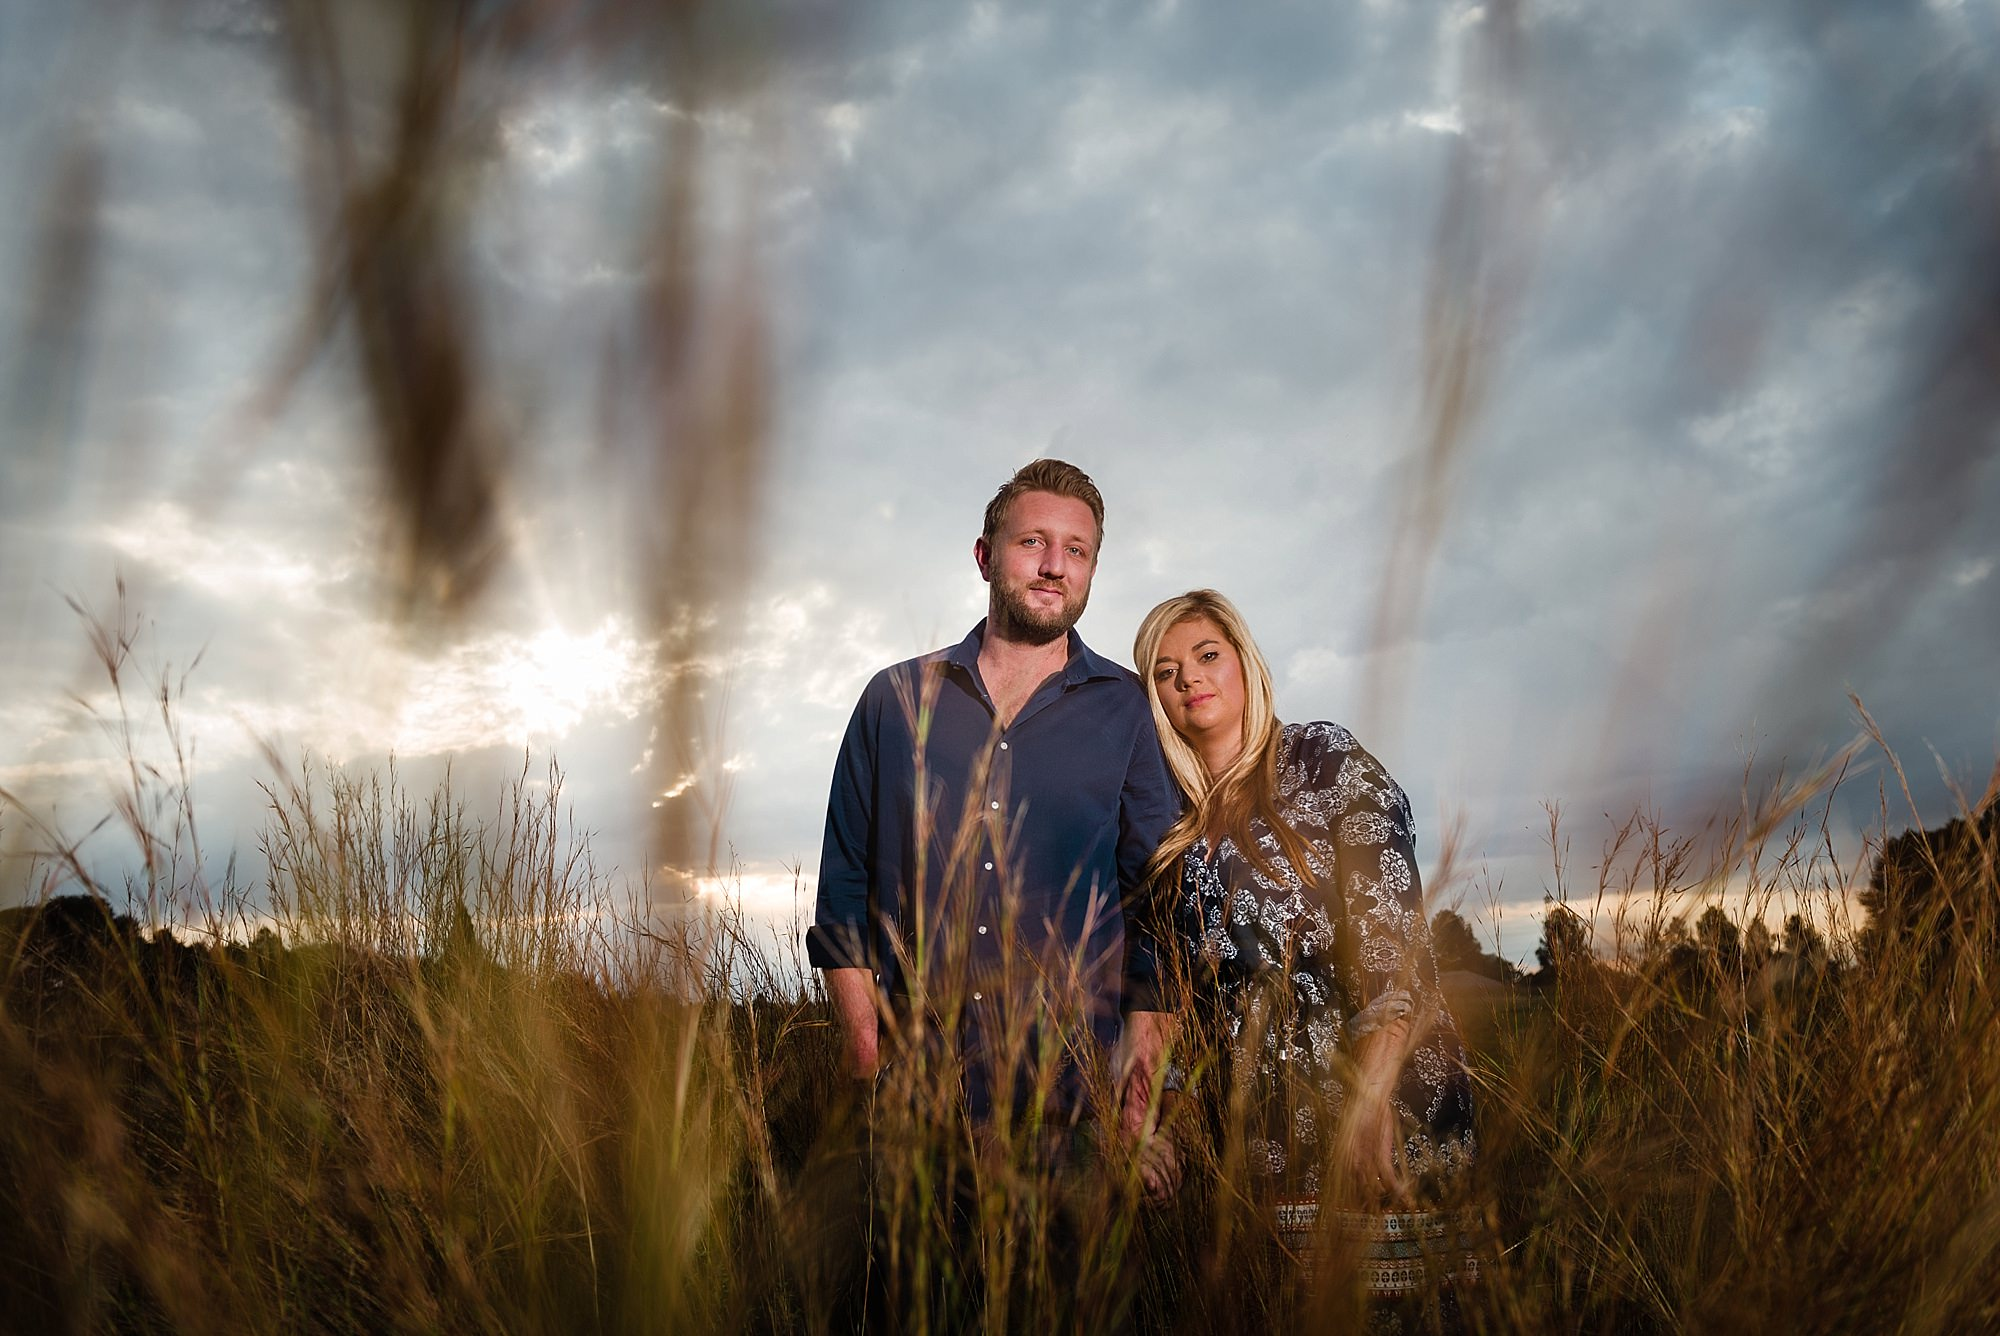 Wynandvandermerwe david irene engagement shoot nature gauteng25.jpg